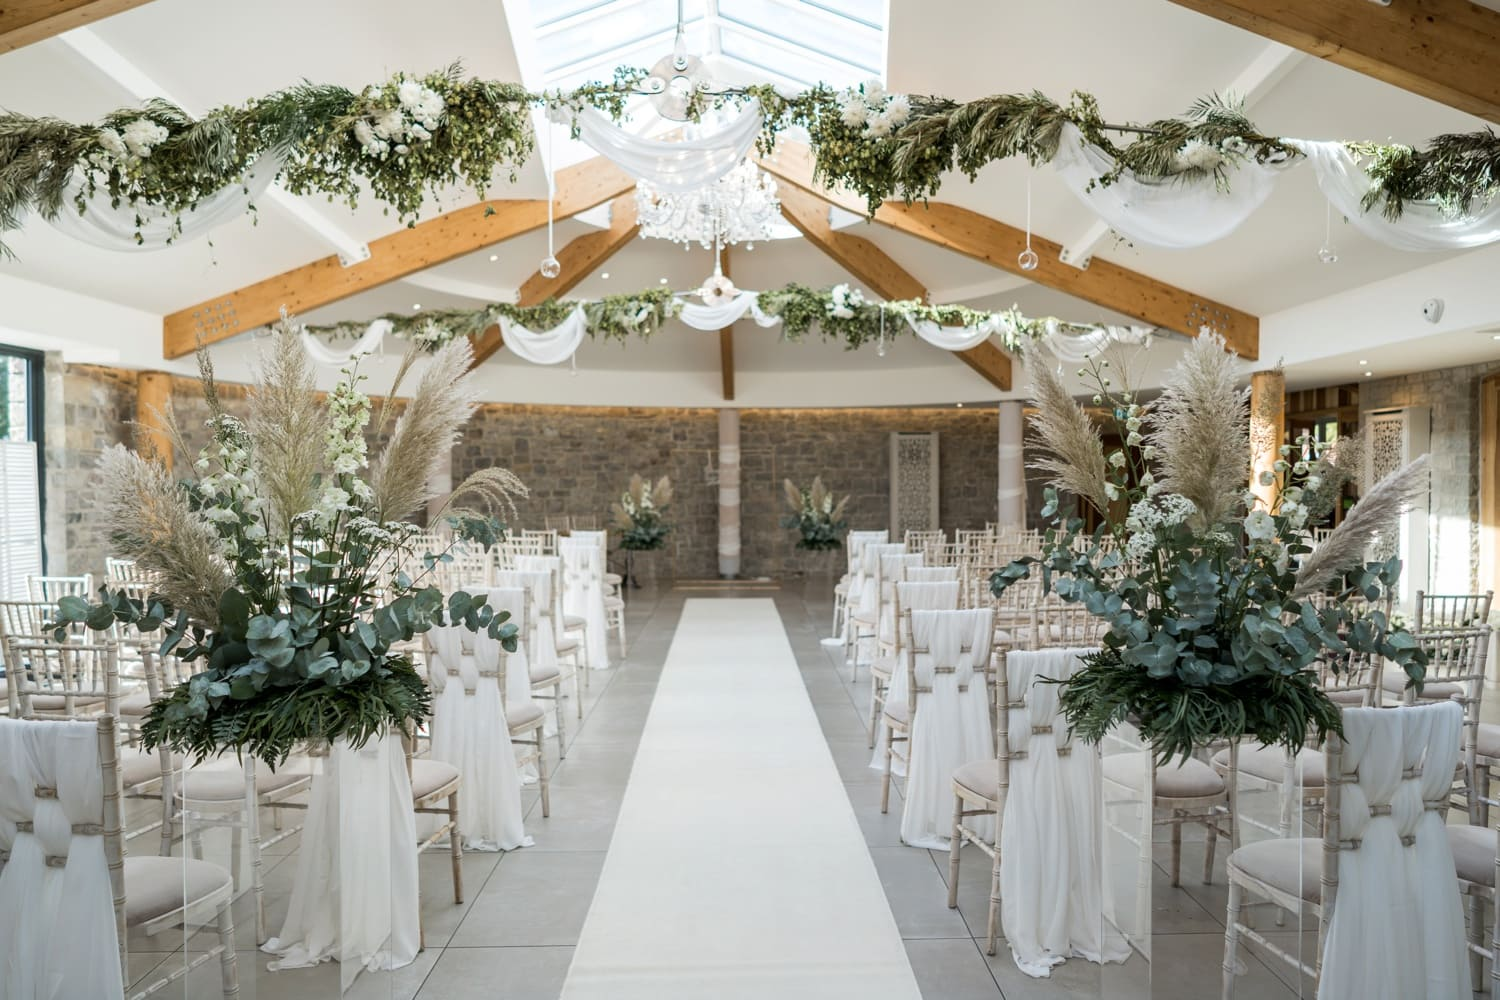 Marriage ceremony room at St Tewdrics House, Monmouthshire, South Wales